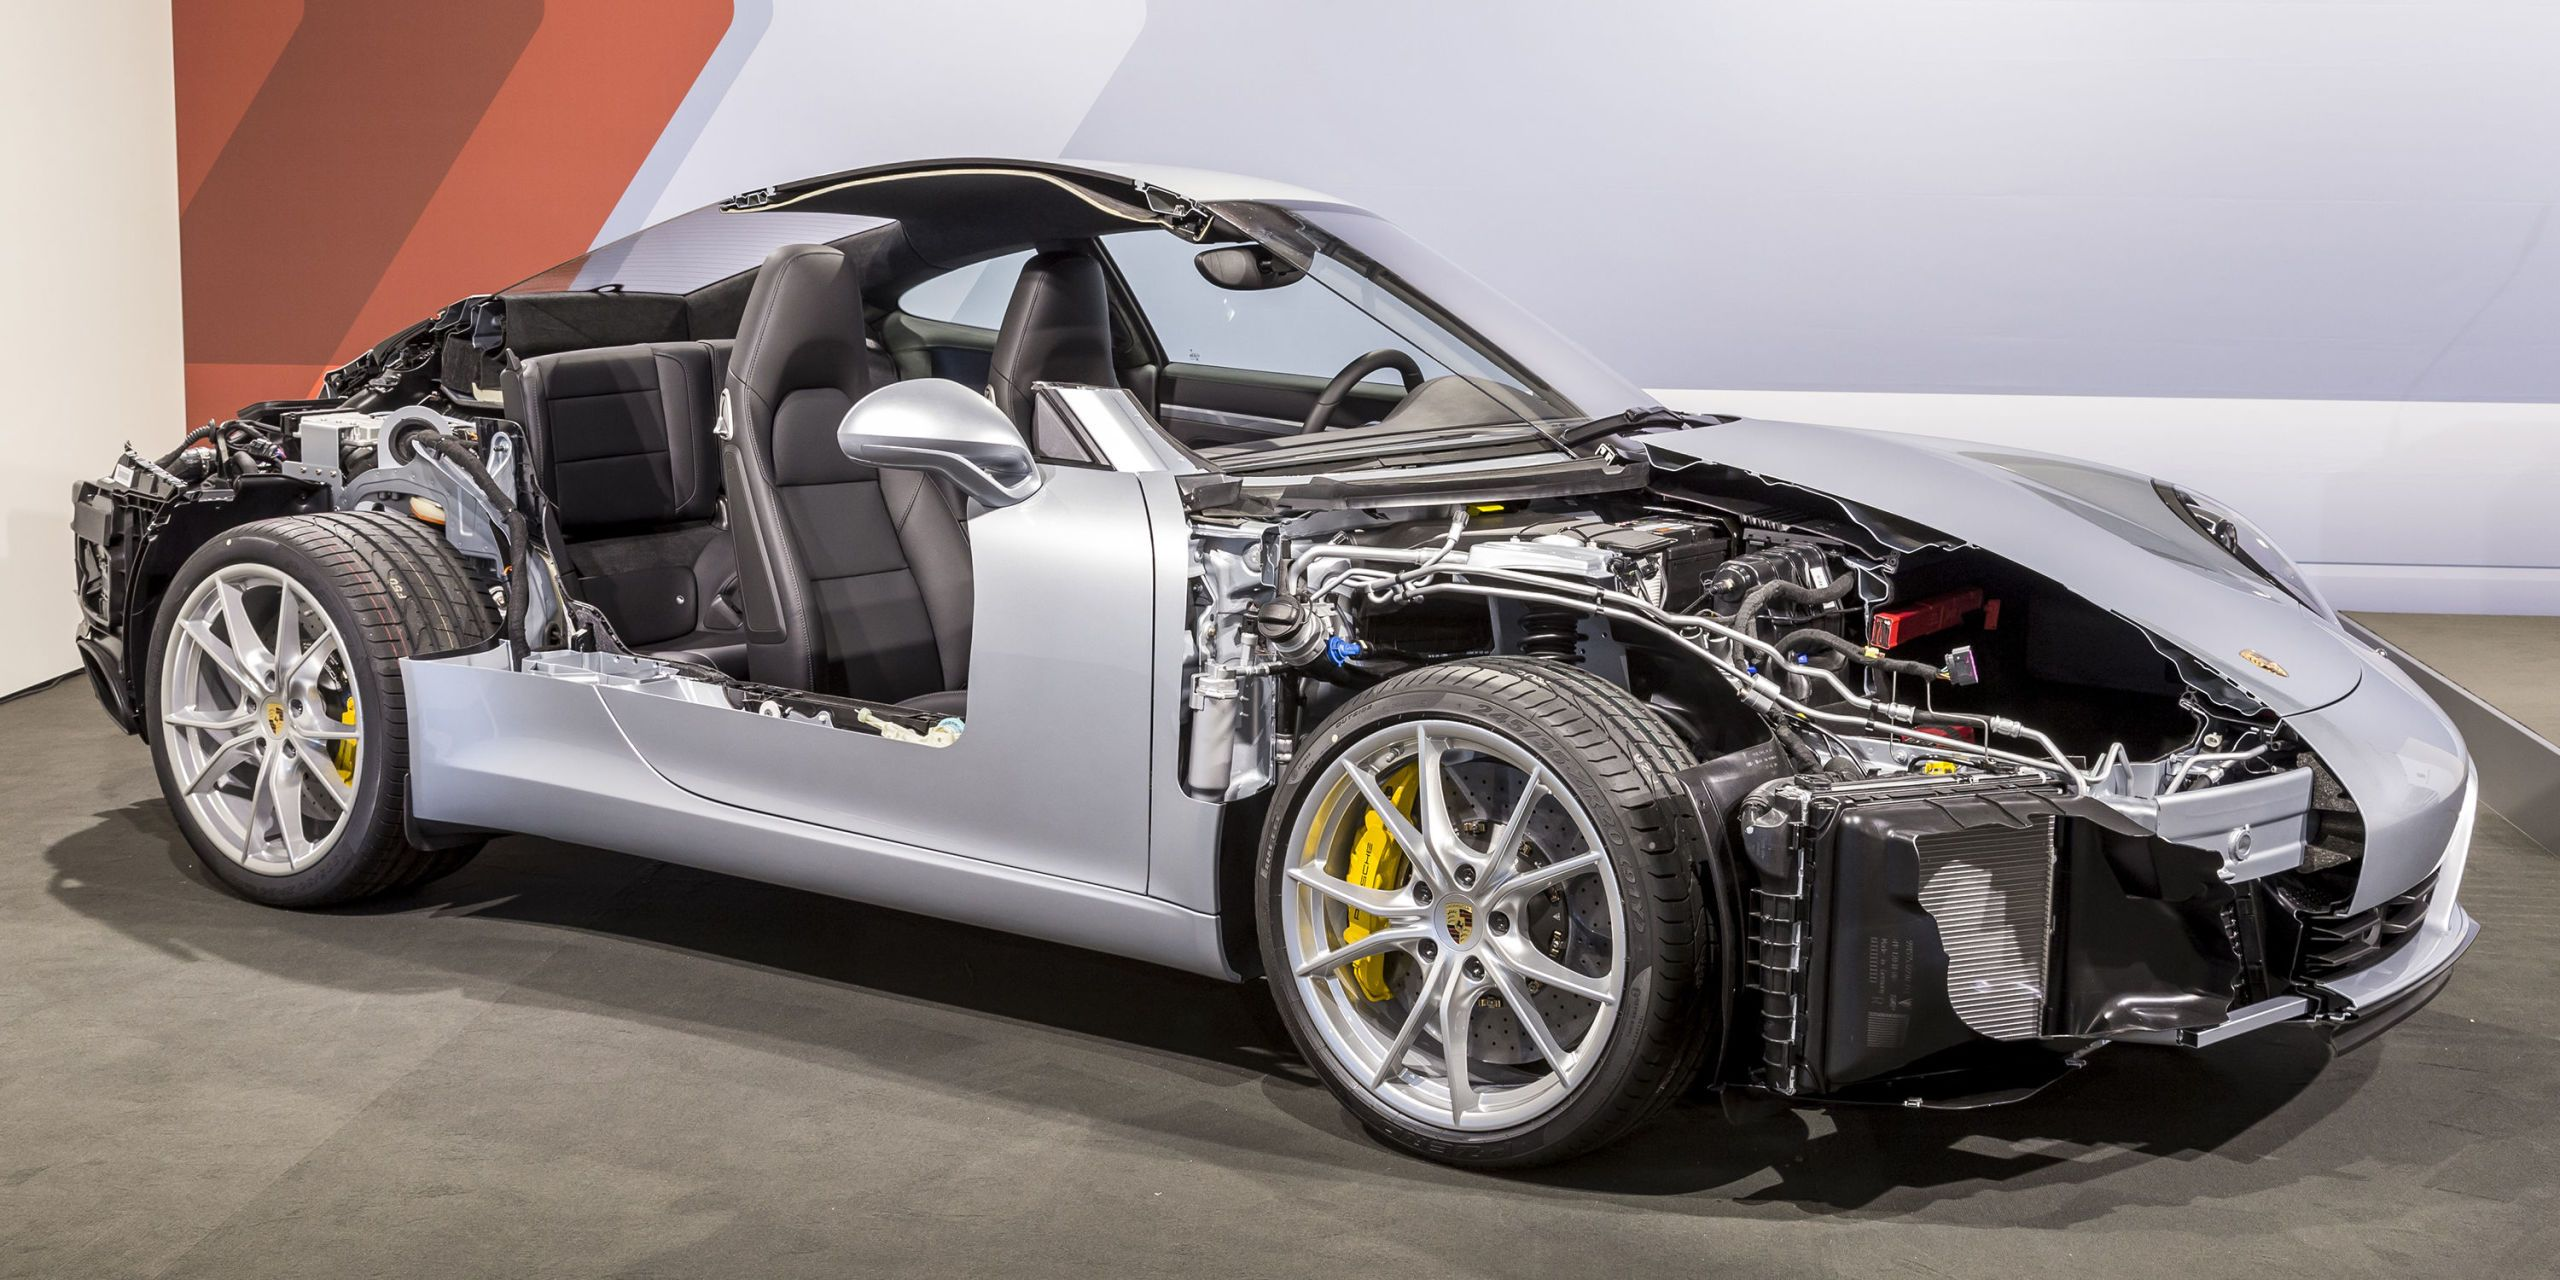 10 things you need to know about the turbocharged 2017 porsche 91110 things you need to know about the turbocharged 2017 porsche 911 carrera